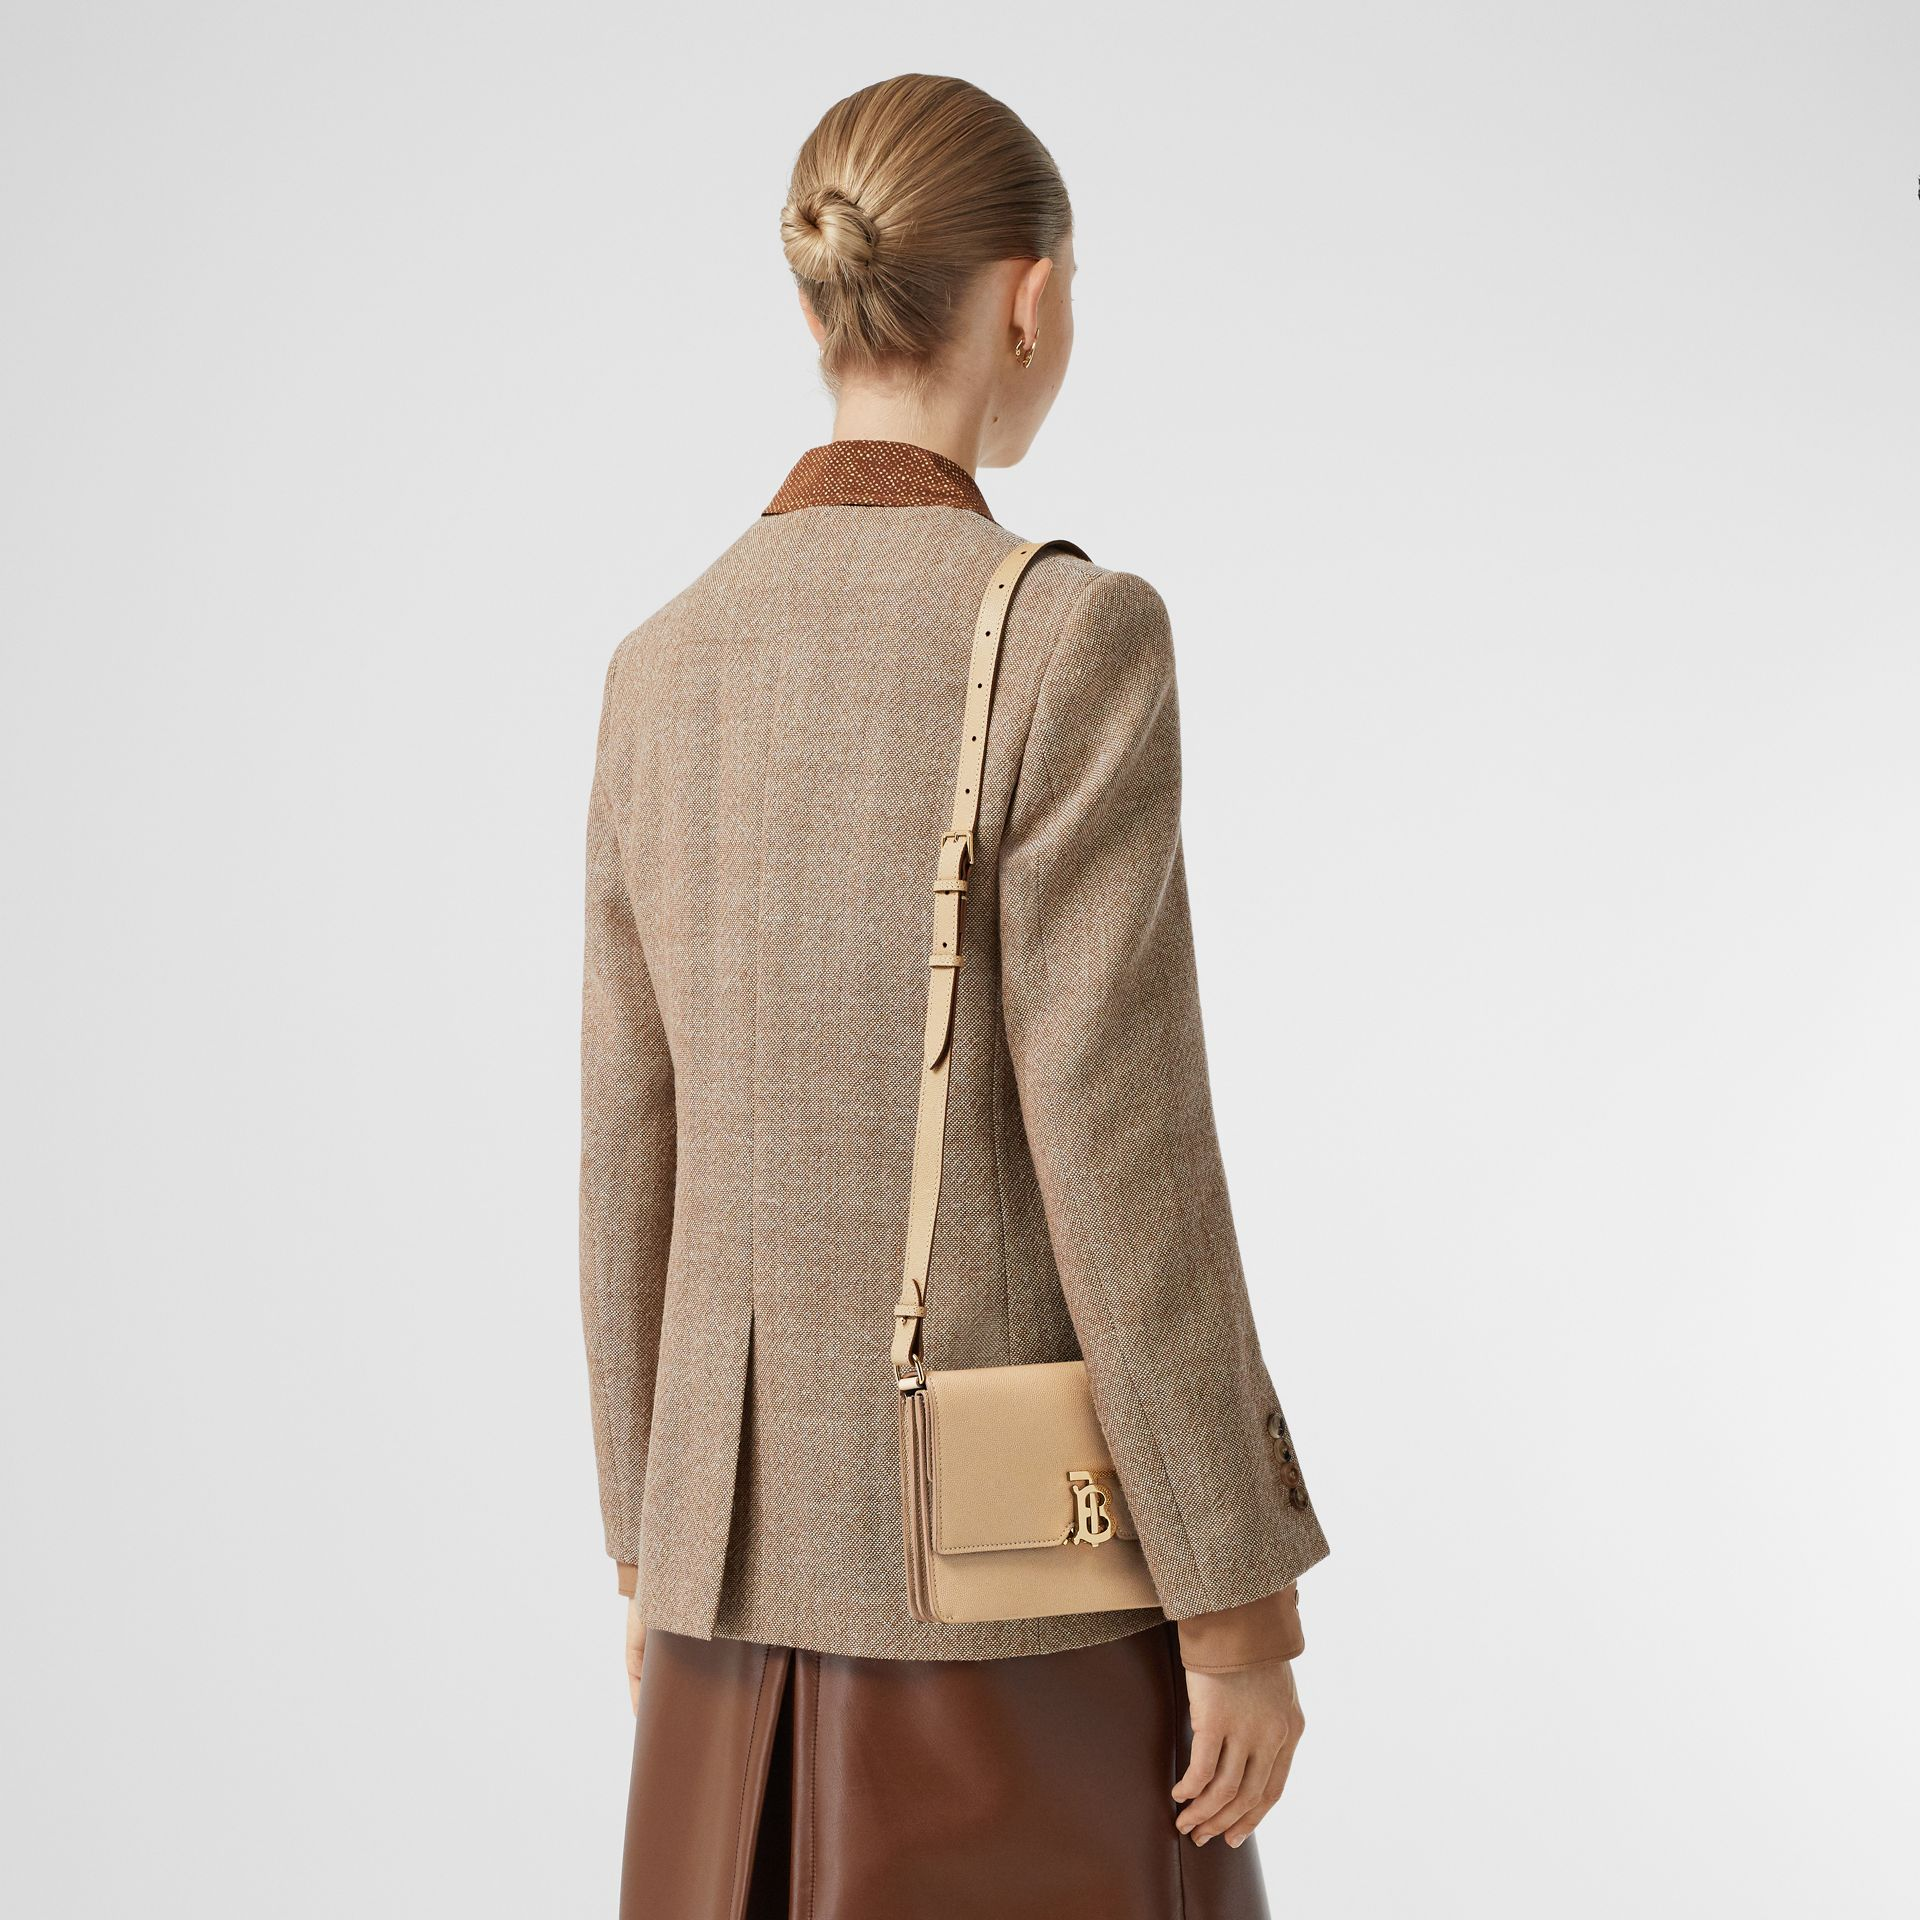 Small Monogram Motif Leather Crossbody Bag in Archive Beige - Women | Burberry Canada - gallery image 2